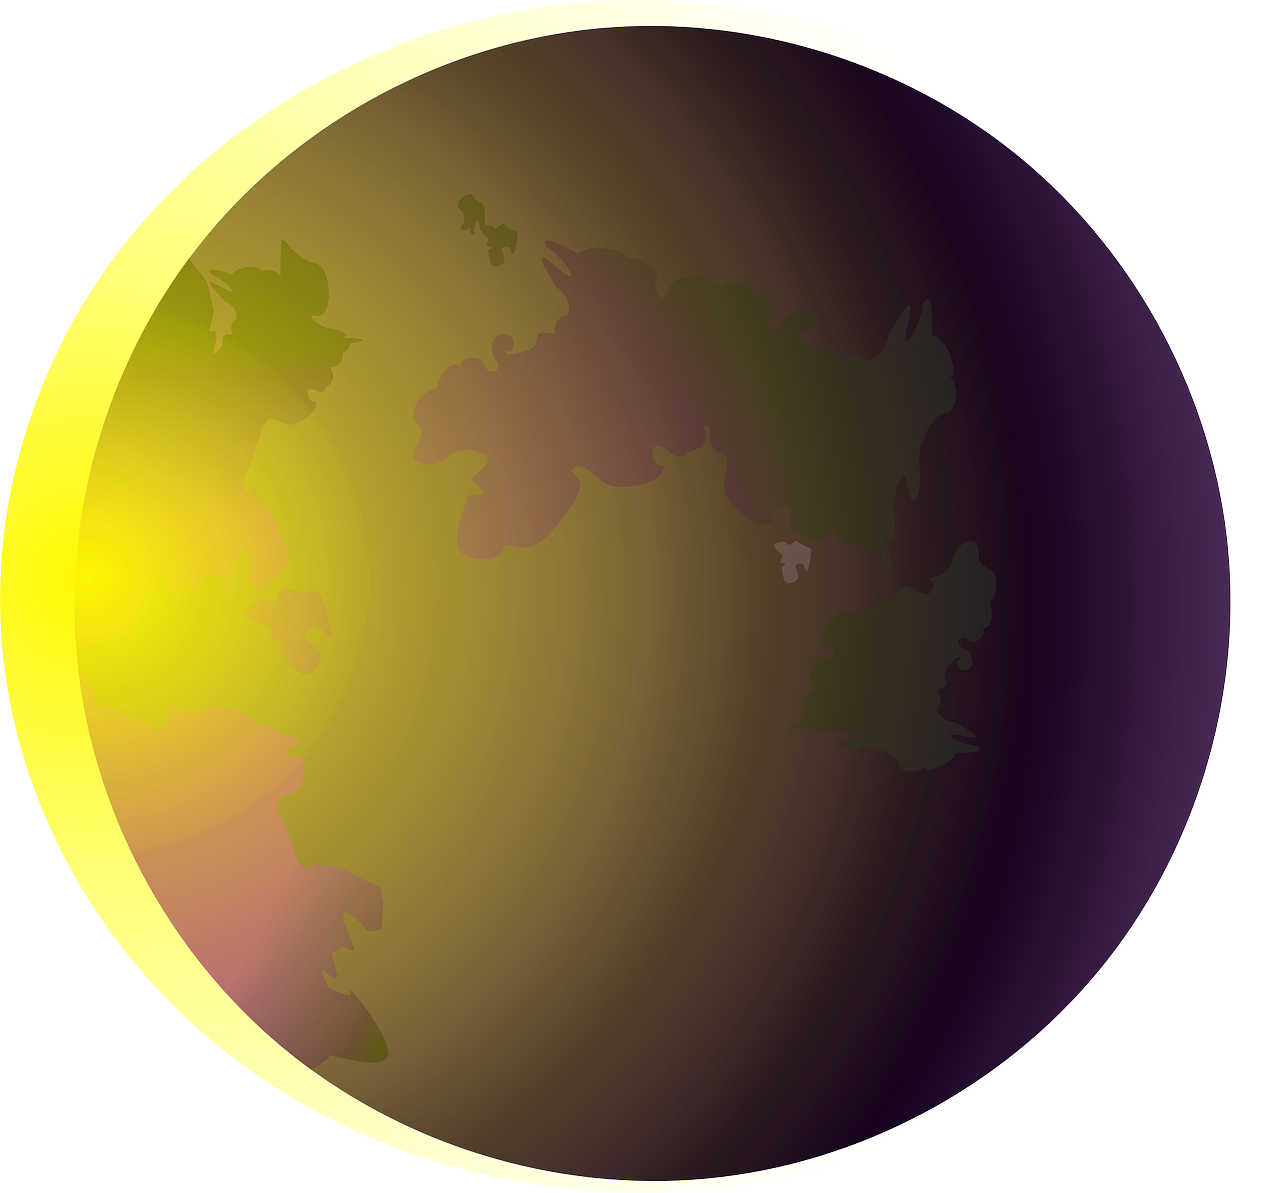 eclipse,solar eclipse,celestial,obscure,hidden,moon,sun,earth,planet,partial eclipse,free vector graphics,free pictures, free photos, free images, royalty free, free illustrations, public domain